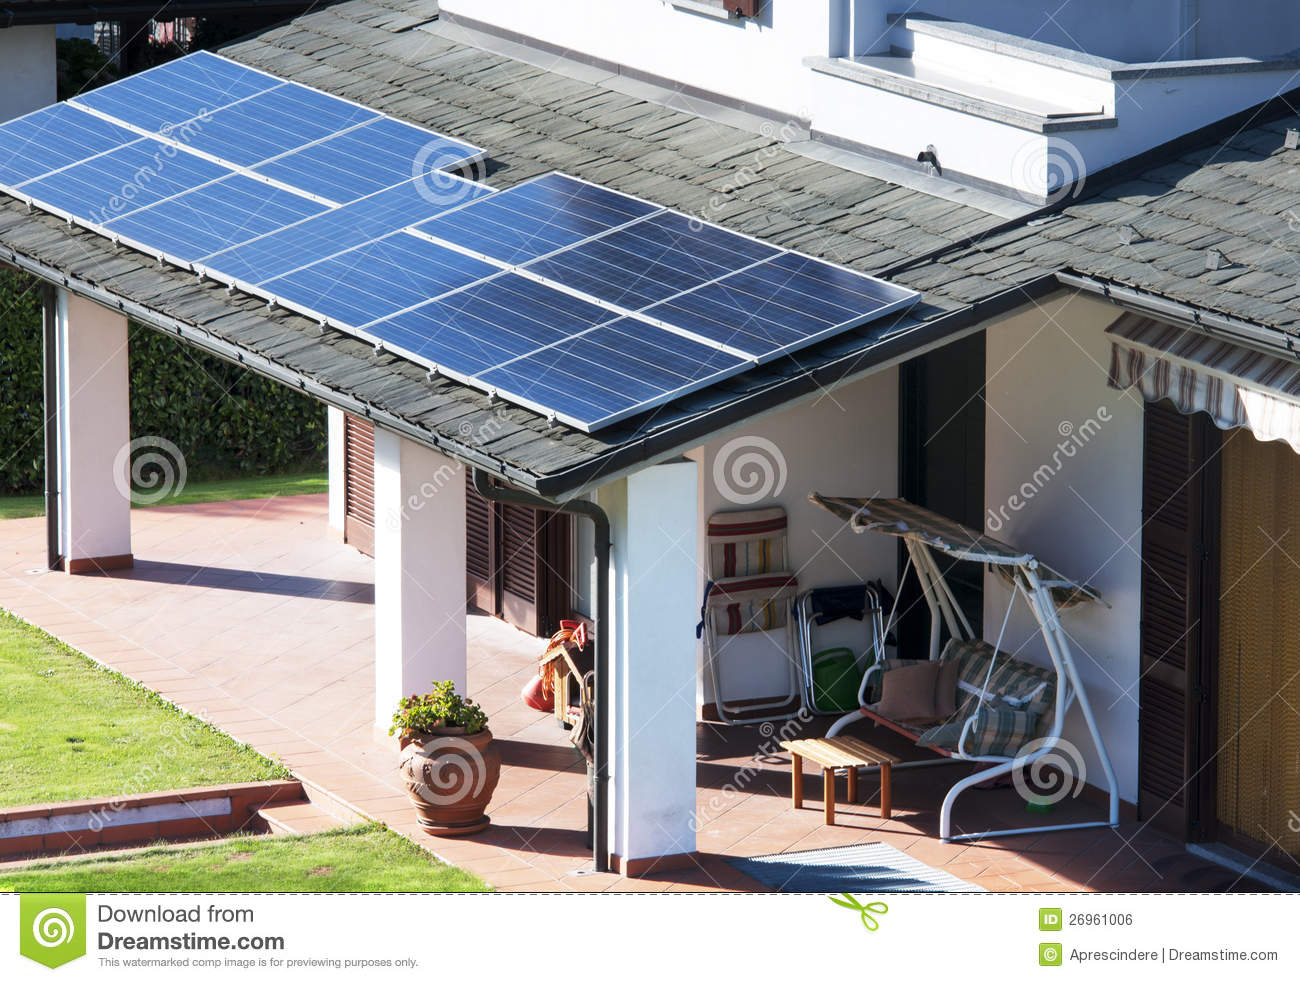 House with solar panels - House With Solar Panels Stock Photo. Image Of Charge - 26961006